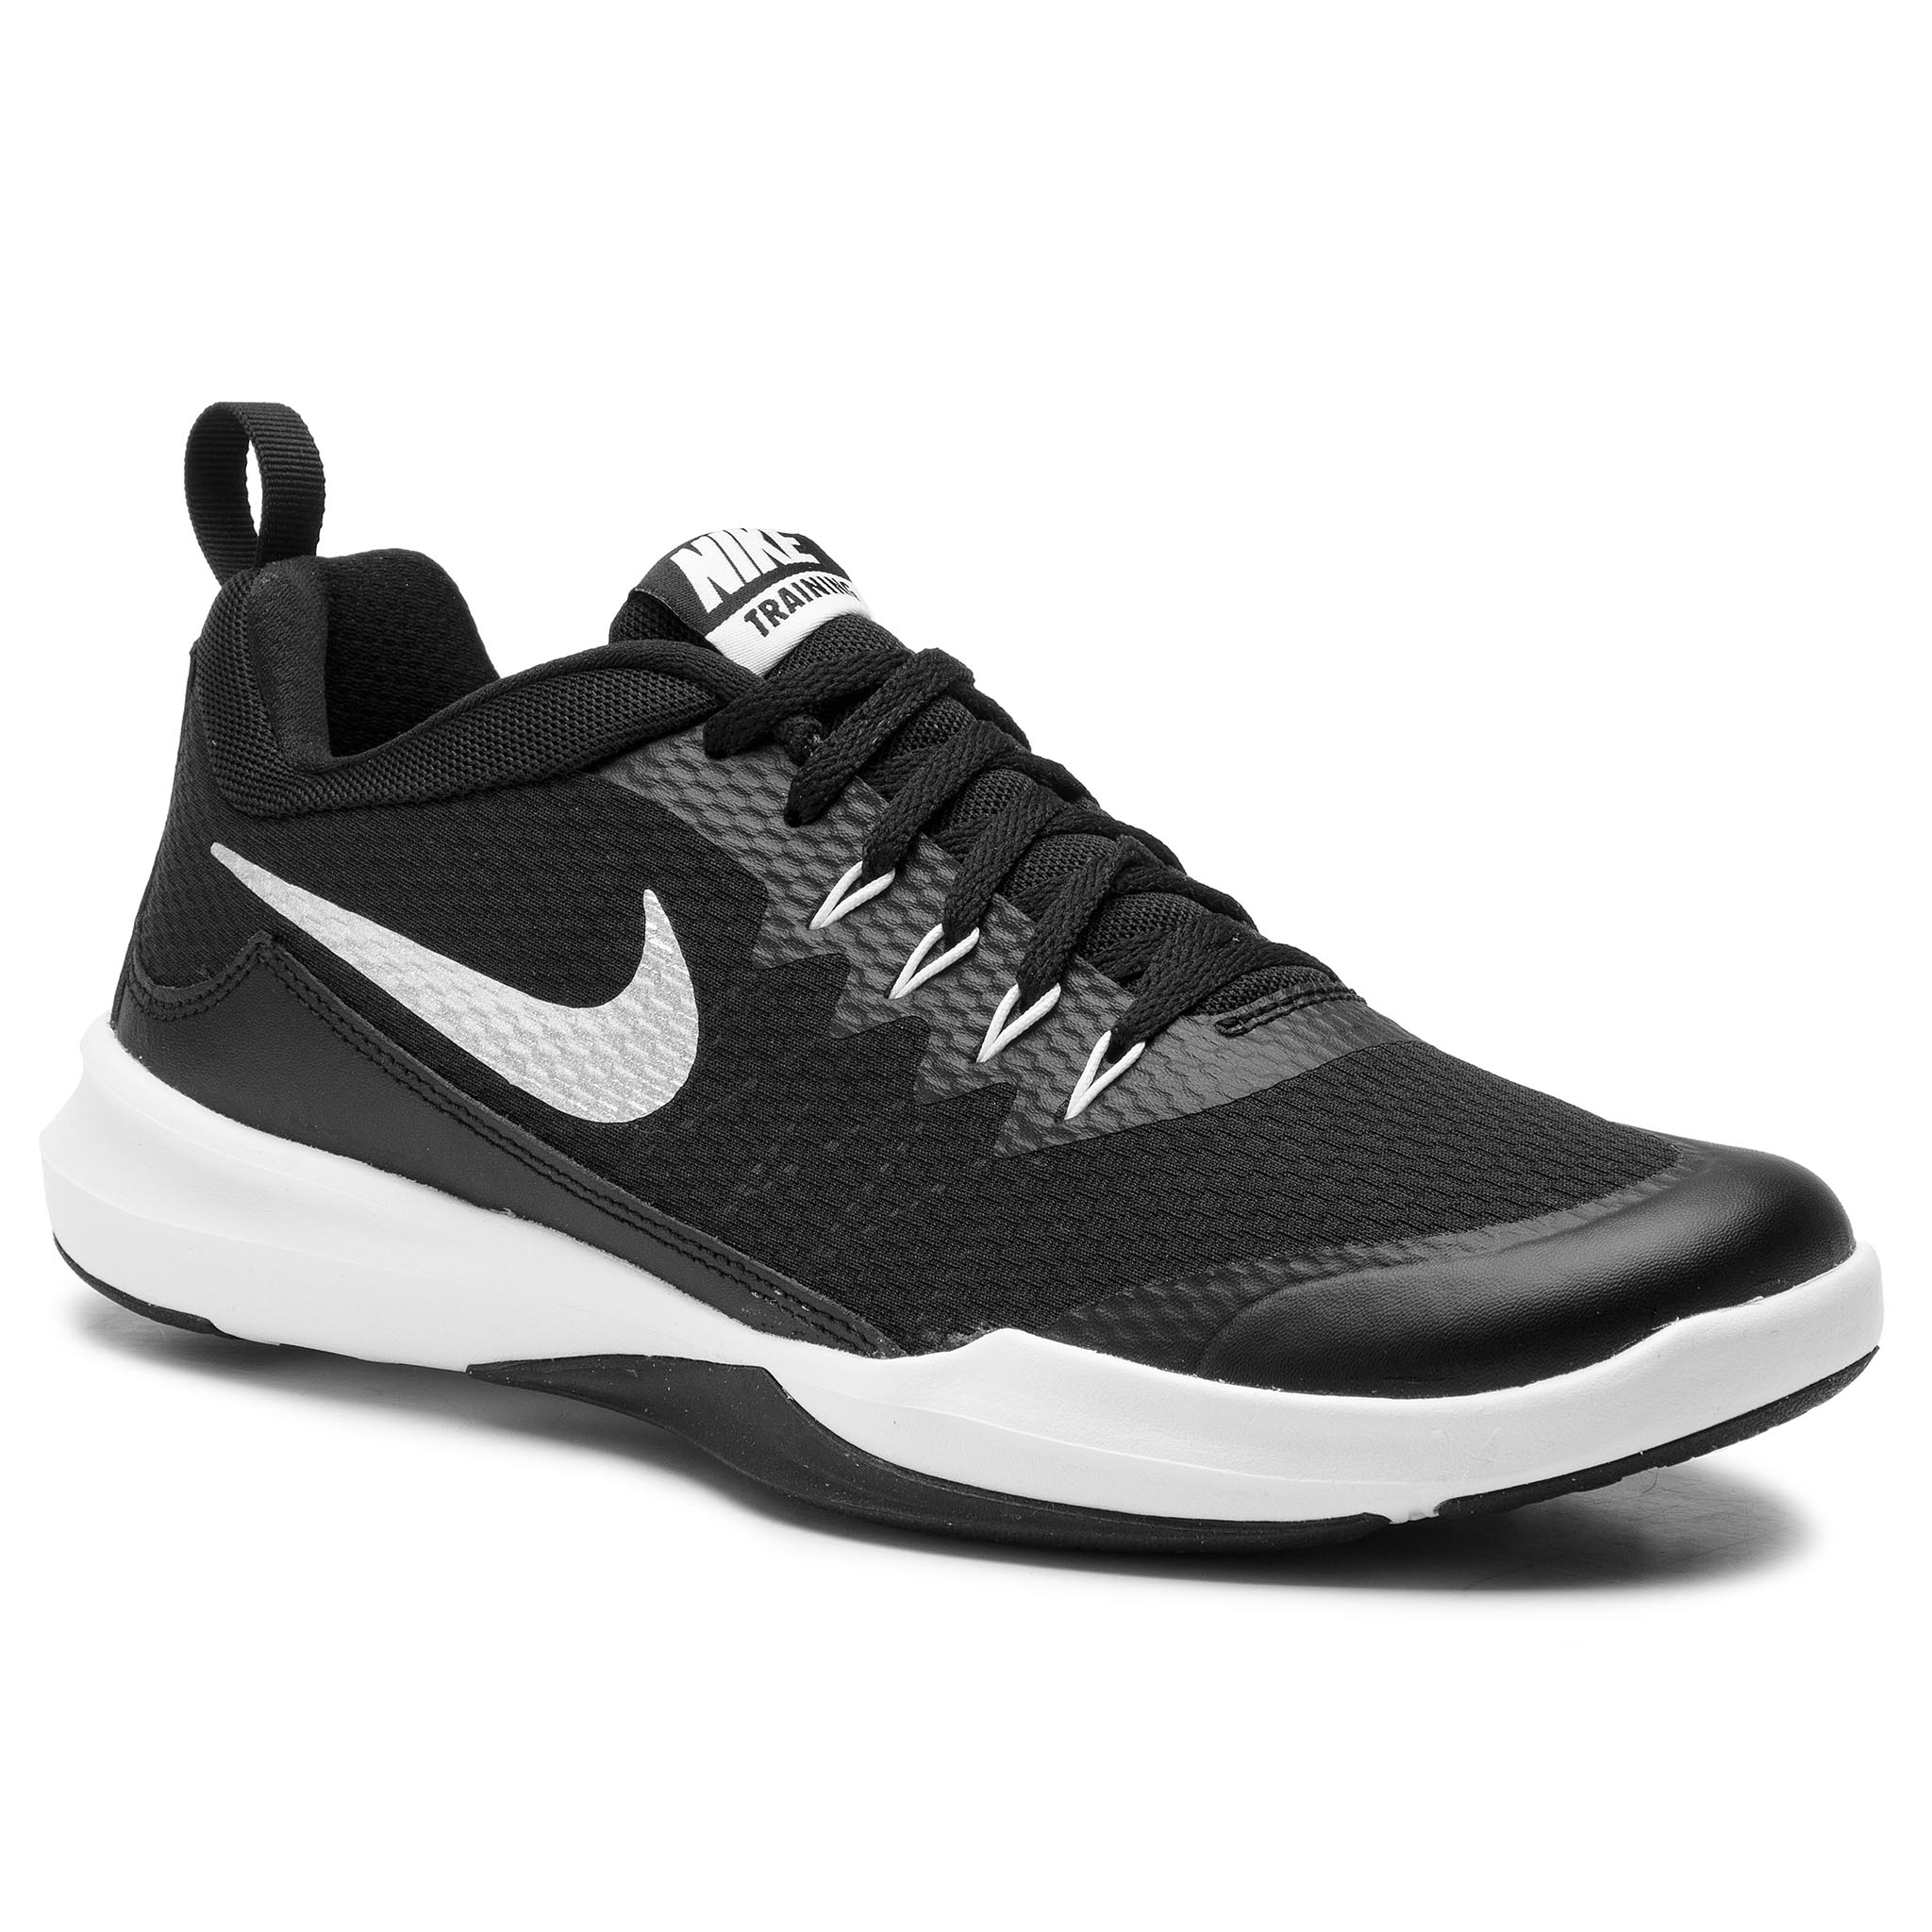 Topánky NIKE - Legend Trainer 924206 001 Black/Metallic Silver/White